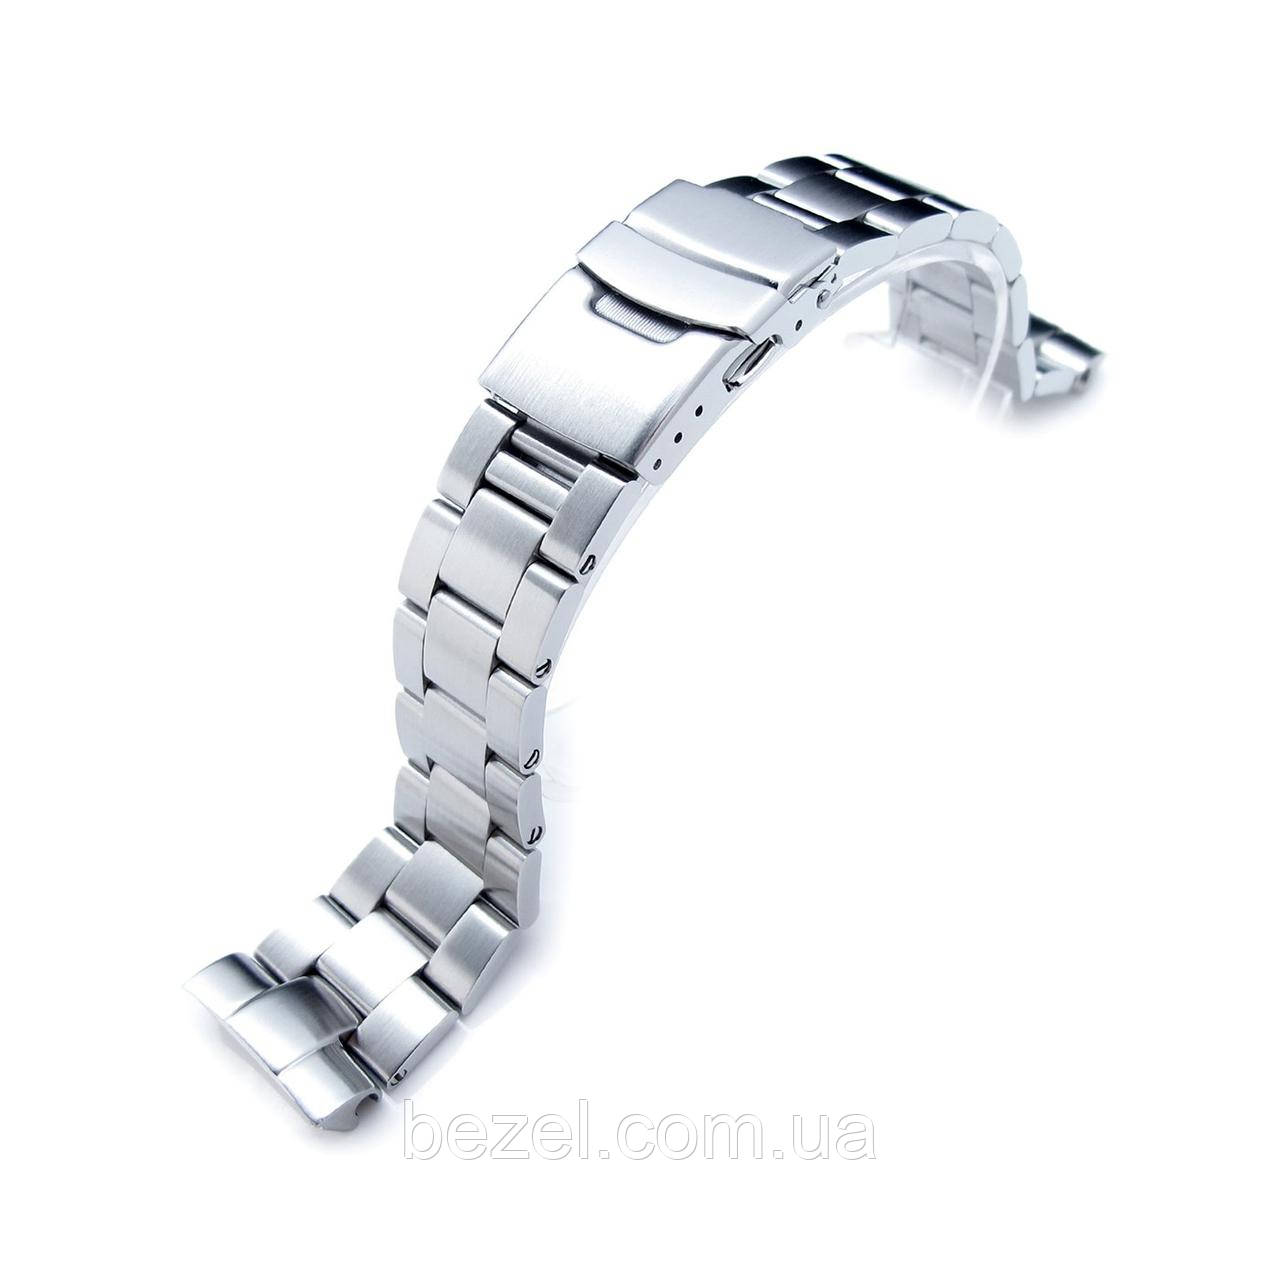 22mm Stainless Steel Super Oyster Band for SEIKO Diver 6309-7040